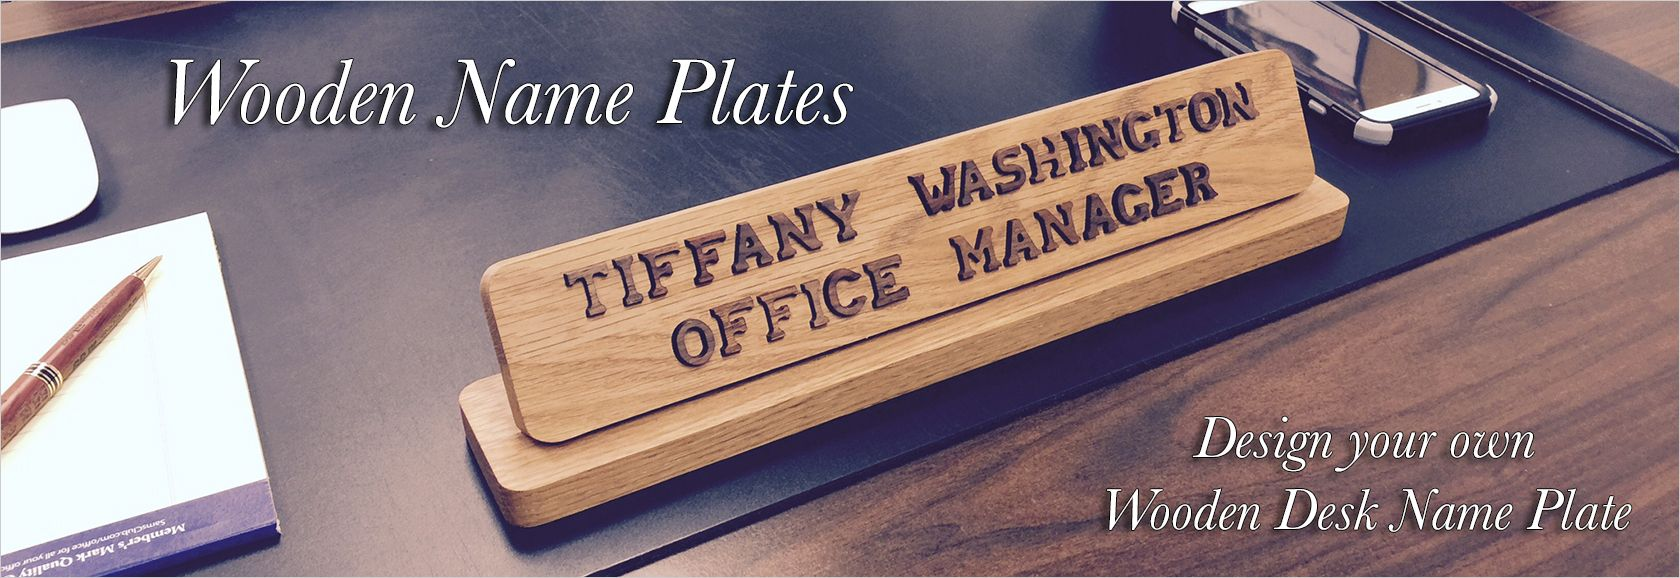 out hassle name plates for keep nameplates desk to cover desknameplates how the of